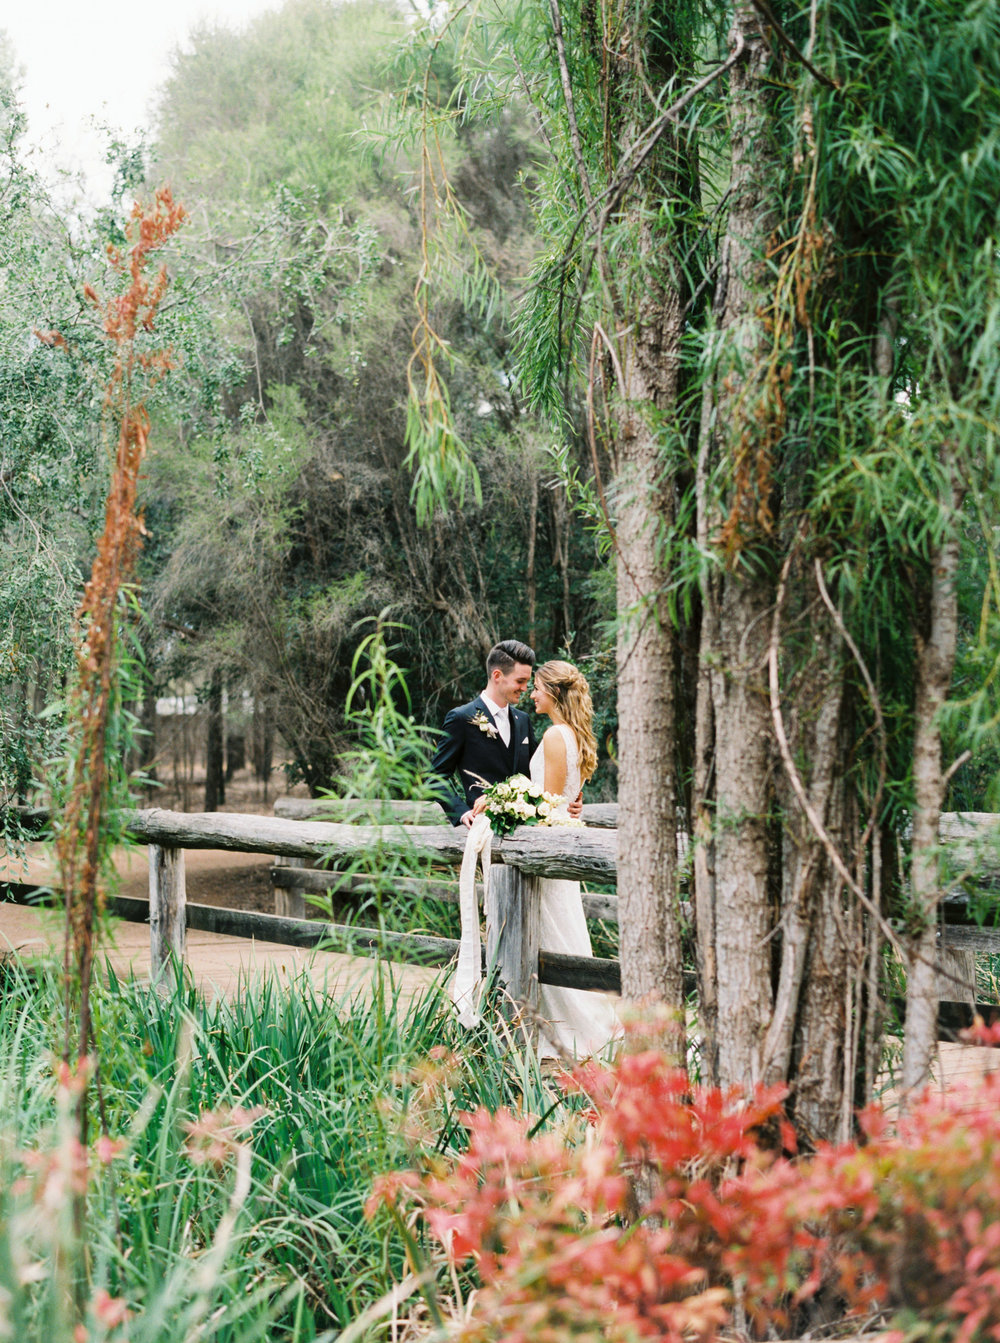 00044- Newcastle NSW Hunter Valley Wedding Photographer Sheri McMahon.jpg